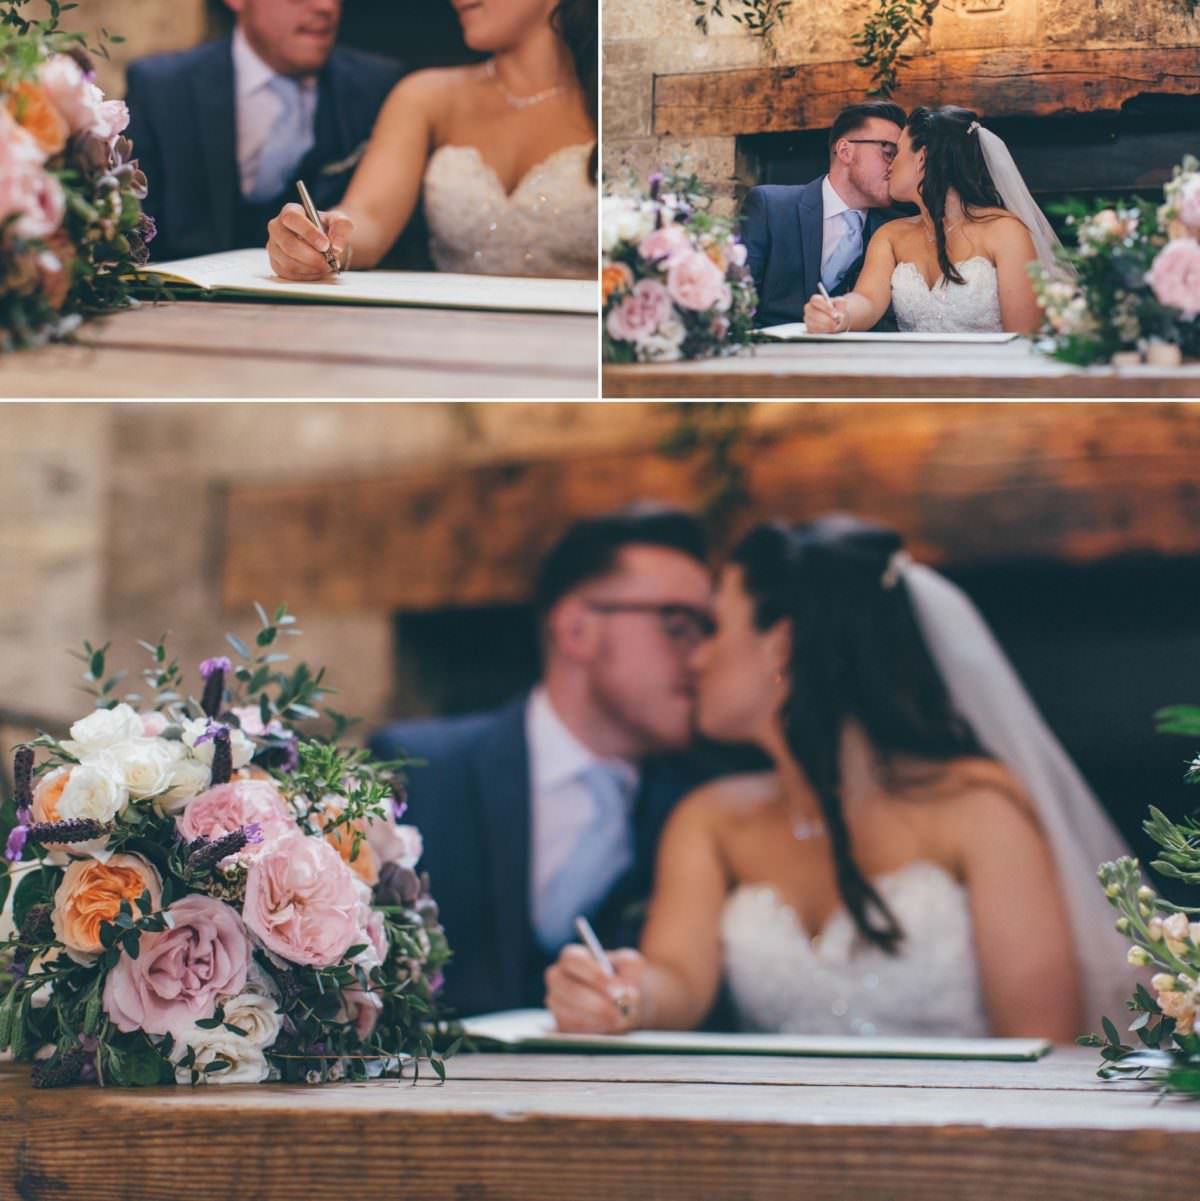 cripps_barn_gloucesterhsire_welsh_wedding_photographer_rachel_lambert_photography_jordan_amy_ 62